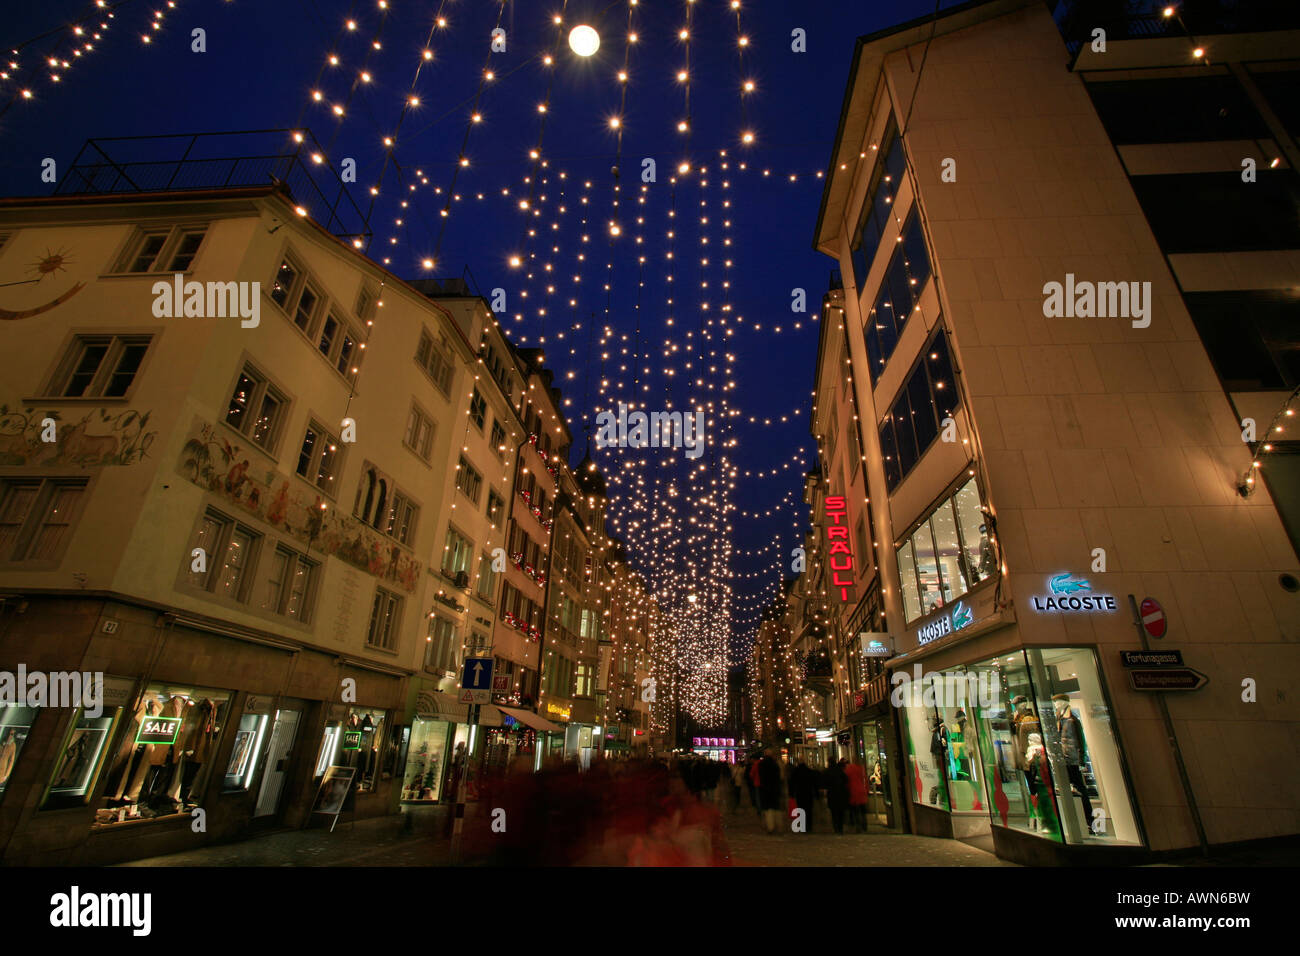 84e1d0d4e9db8 Classic Christmas illumination in the city center, Rennweg, Zurich,  Switzerland - Stock Image